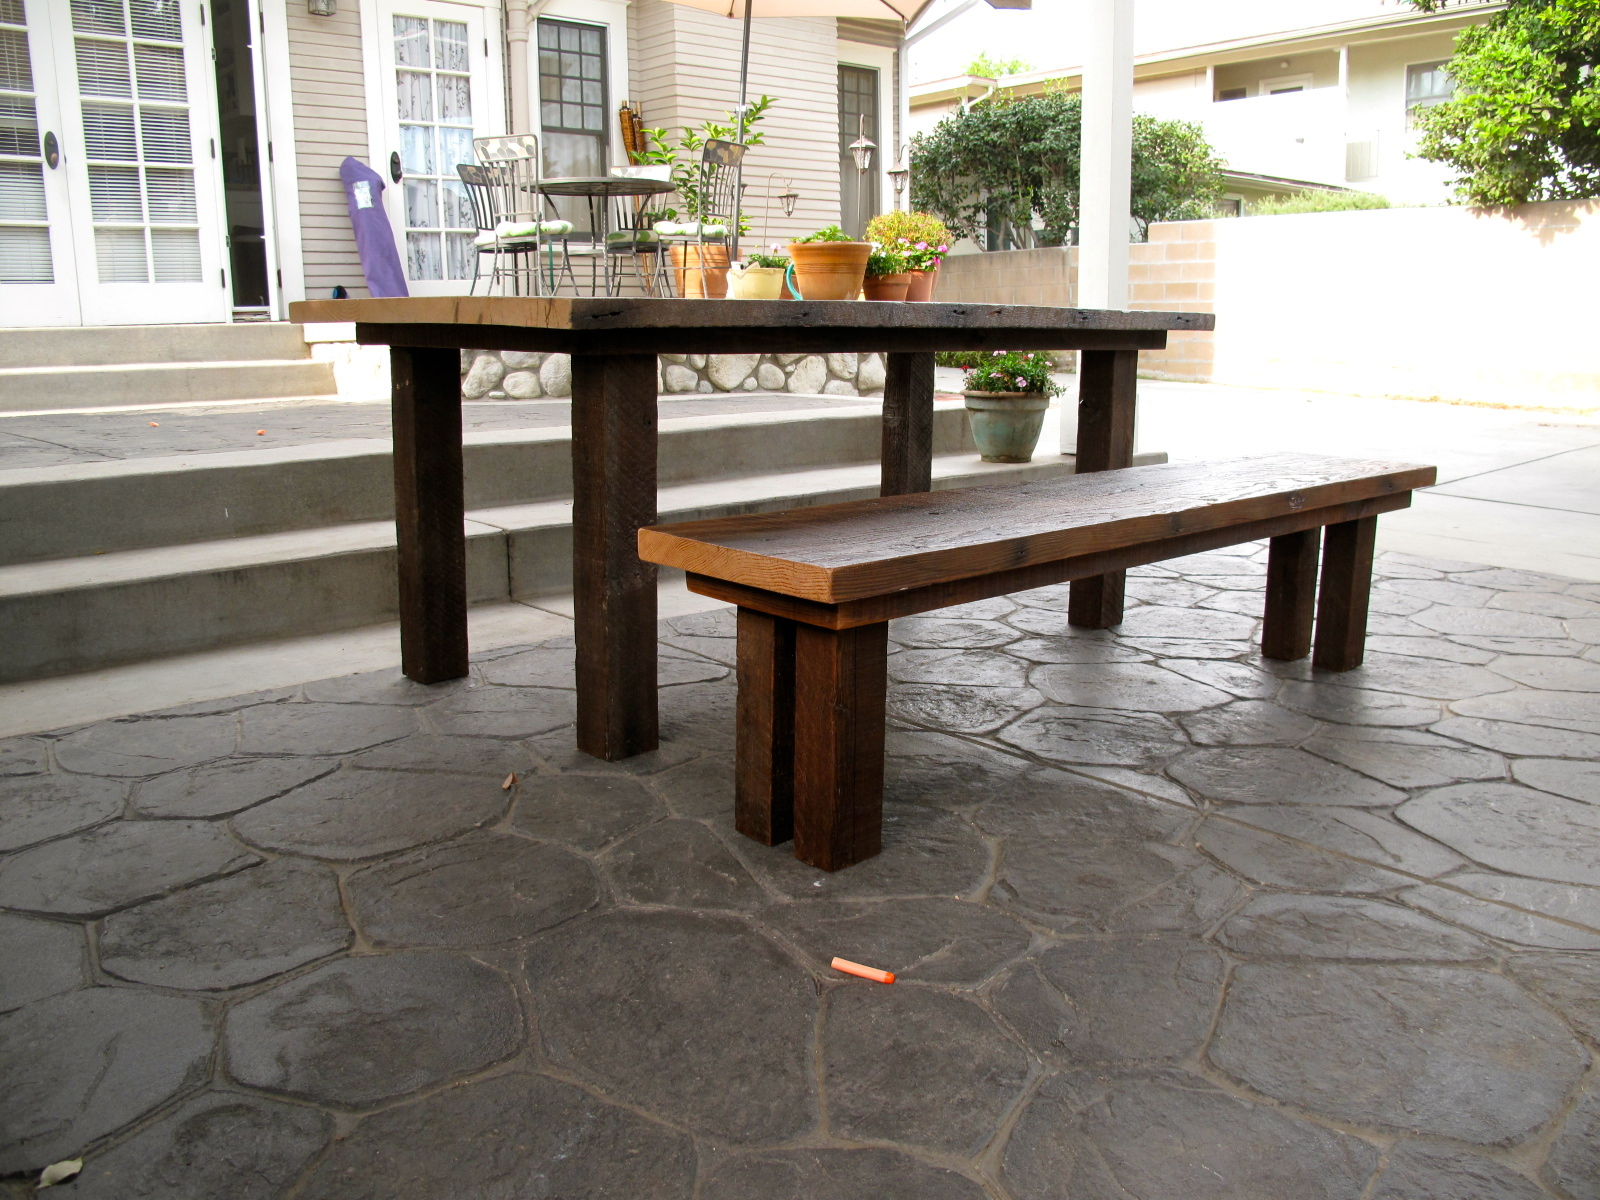 Reclaimed Wood Furniture: Outdoor Dining